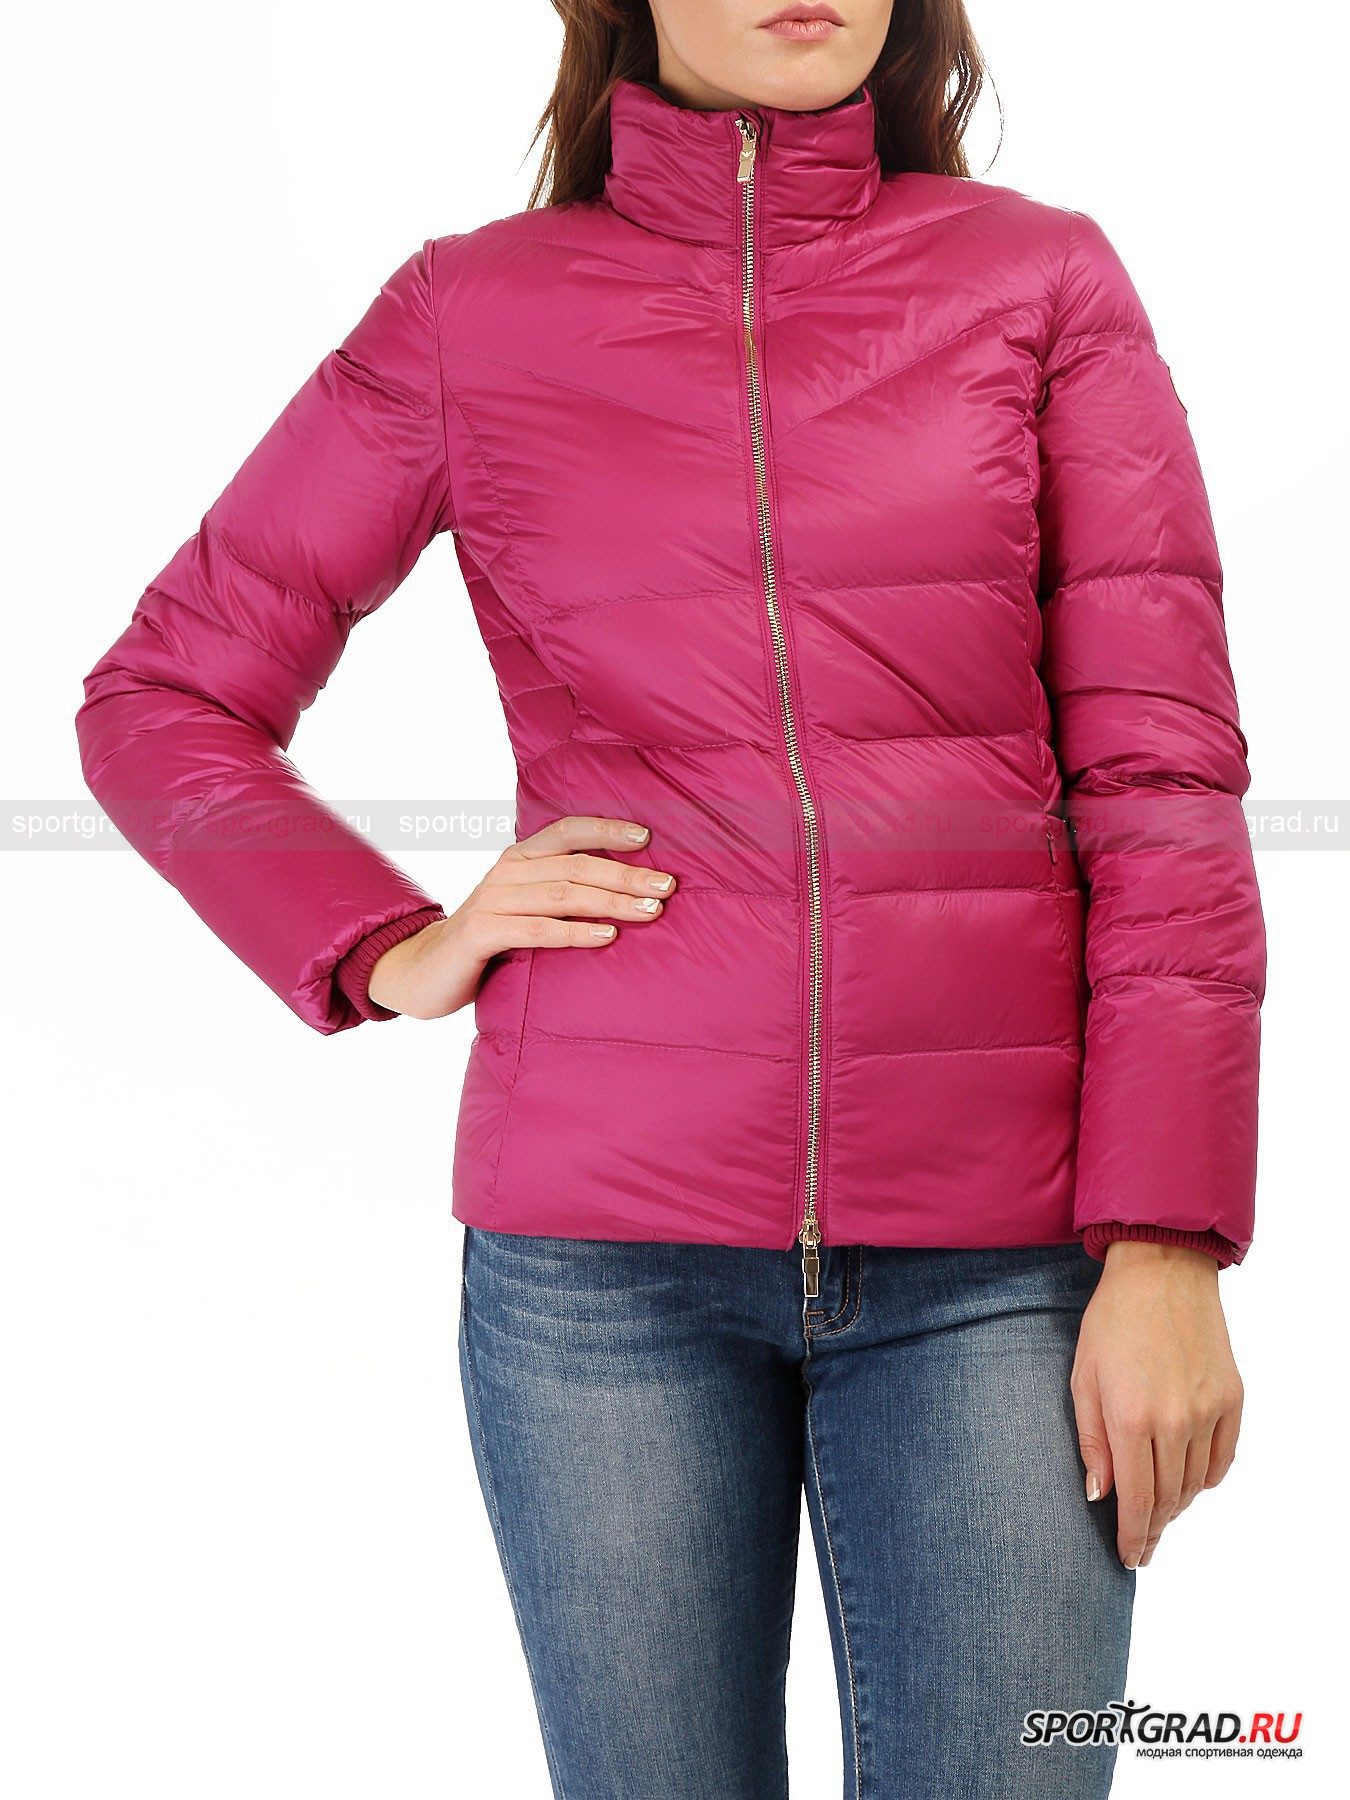 ������ ������� Mountain Core Down Jacket EA7 EMPORIO ARMANI